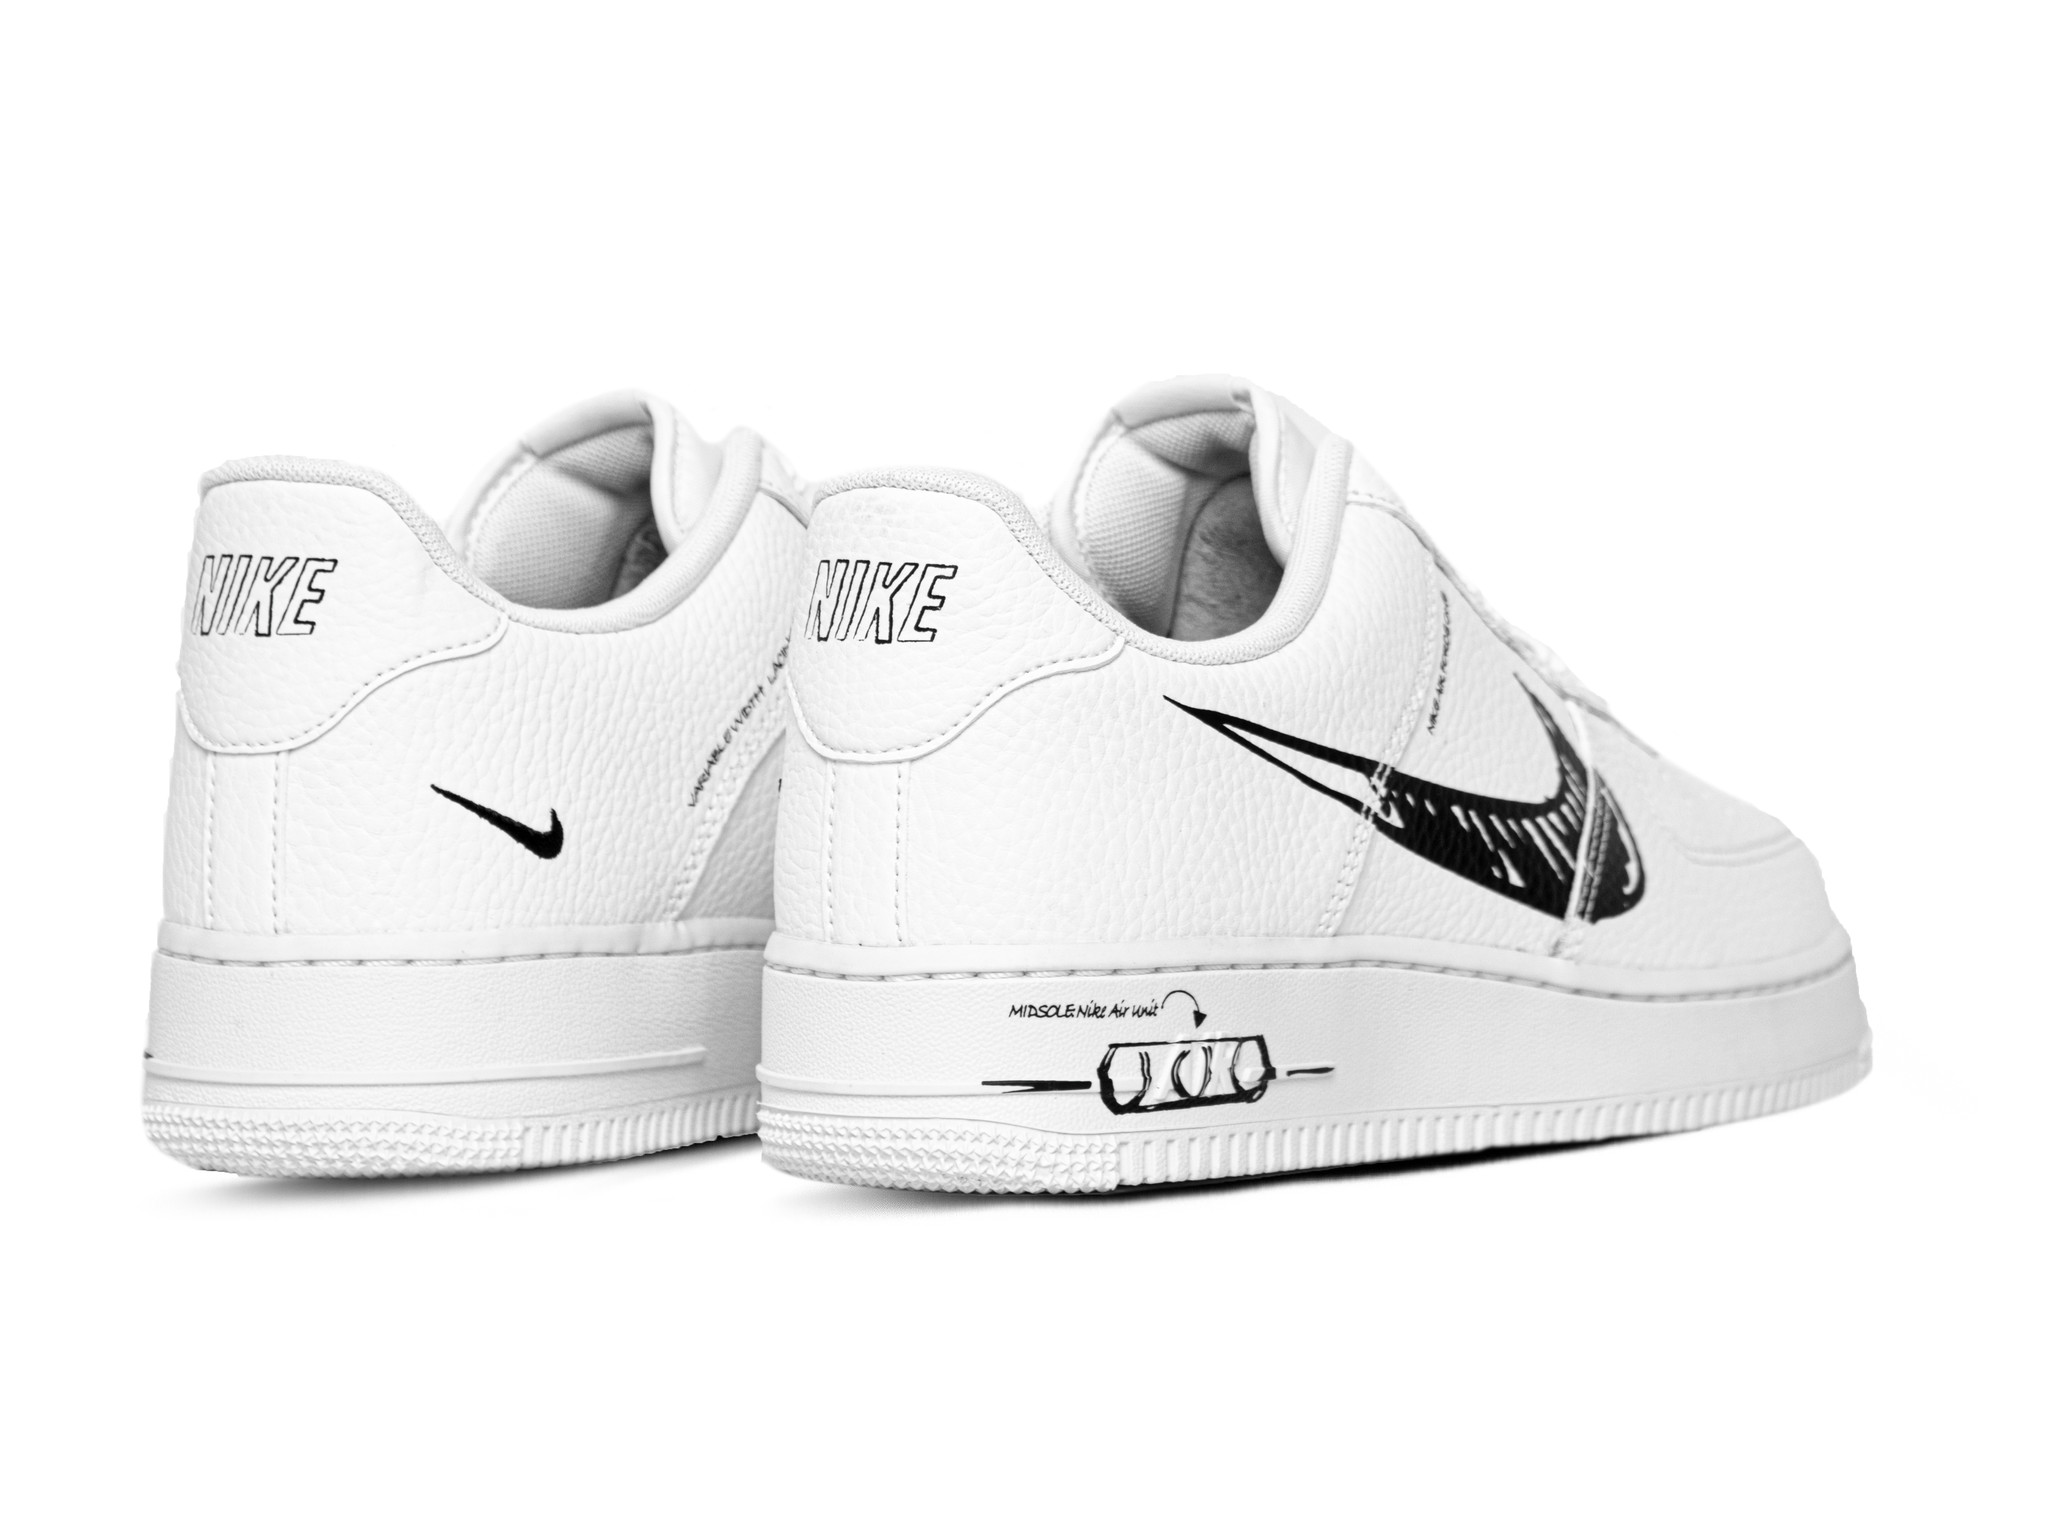 Nike Air Force 1 LV8 Utility White Black White CW7581 101